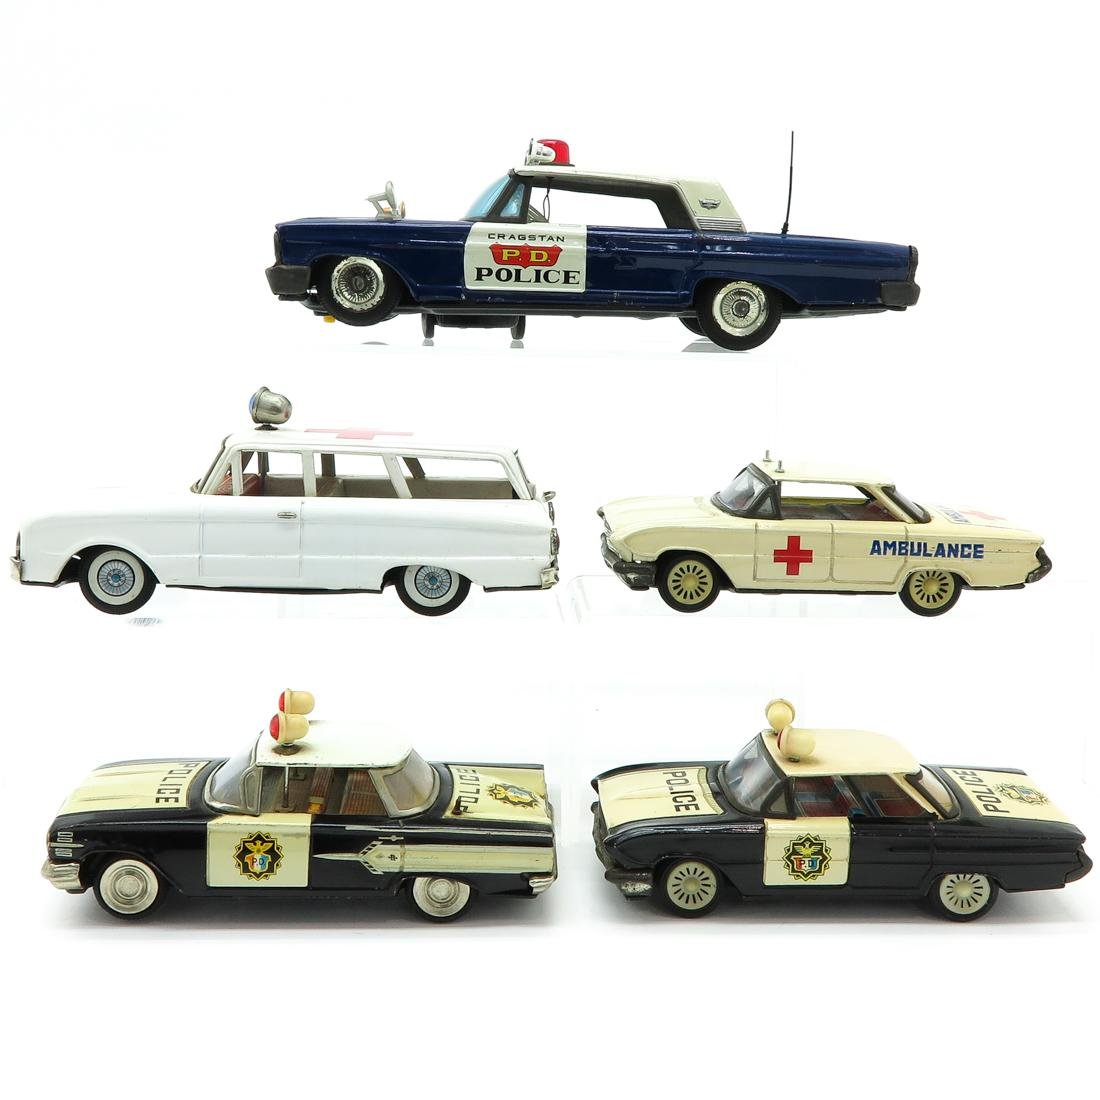 Lot of 5 Vintage Toy Police and Ambulance Cars